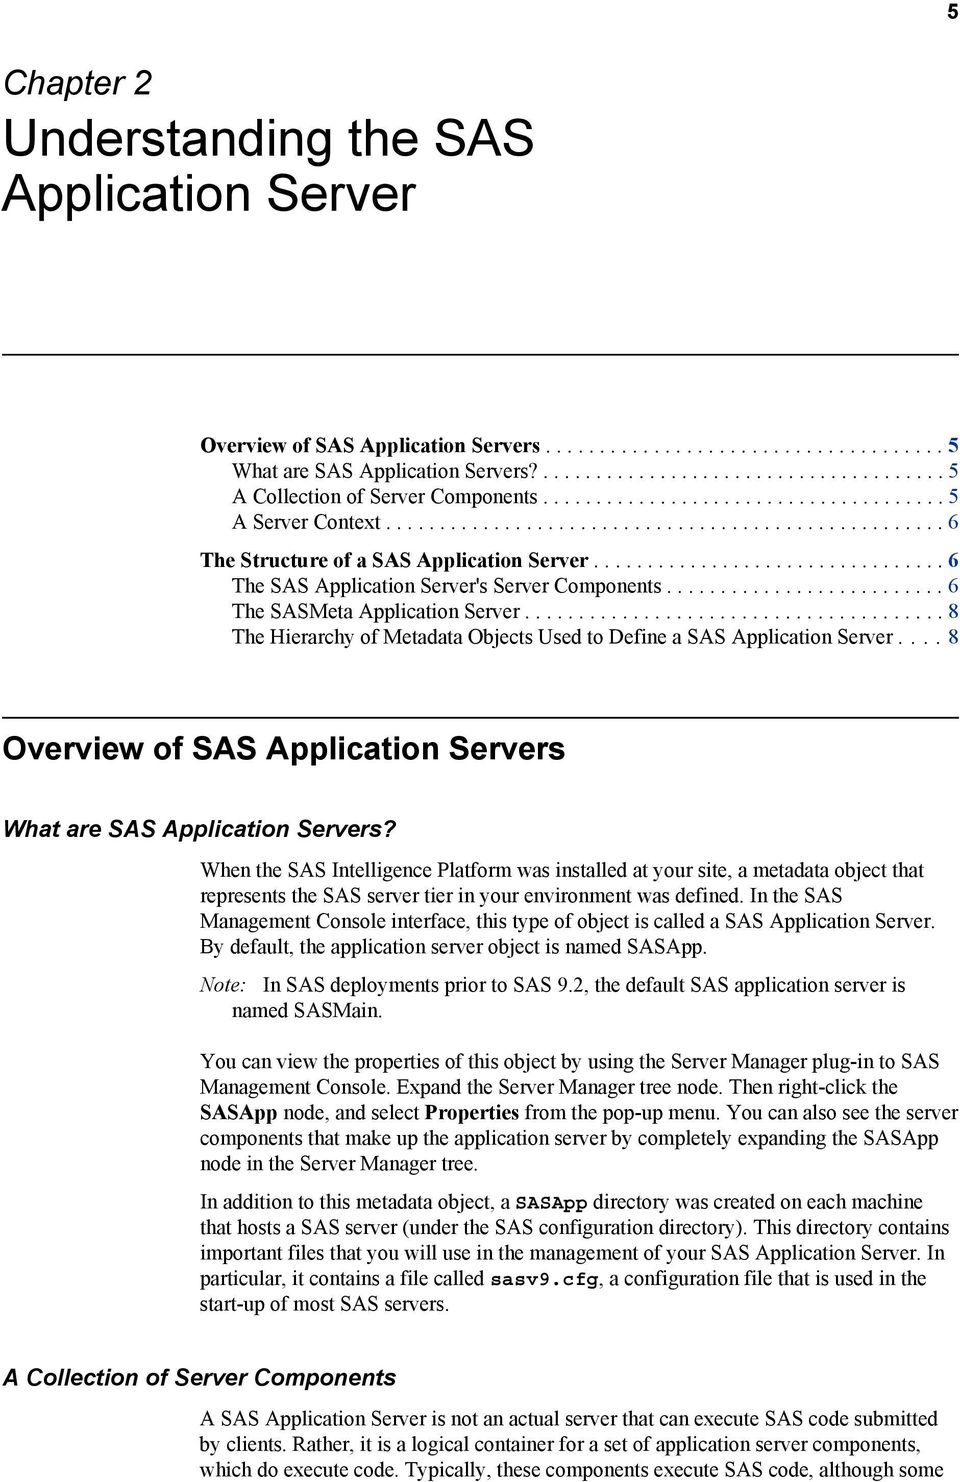 ................................ 6 The SAS Application Server's Server Components.......................... 6 The SASMeta Application Server.